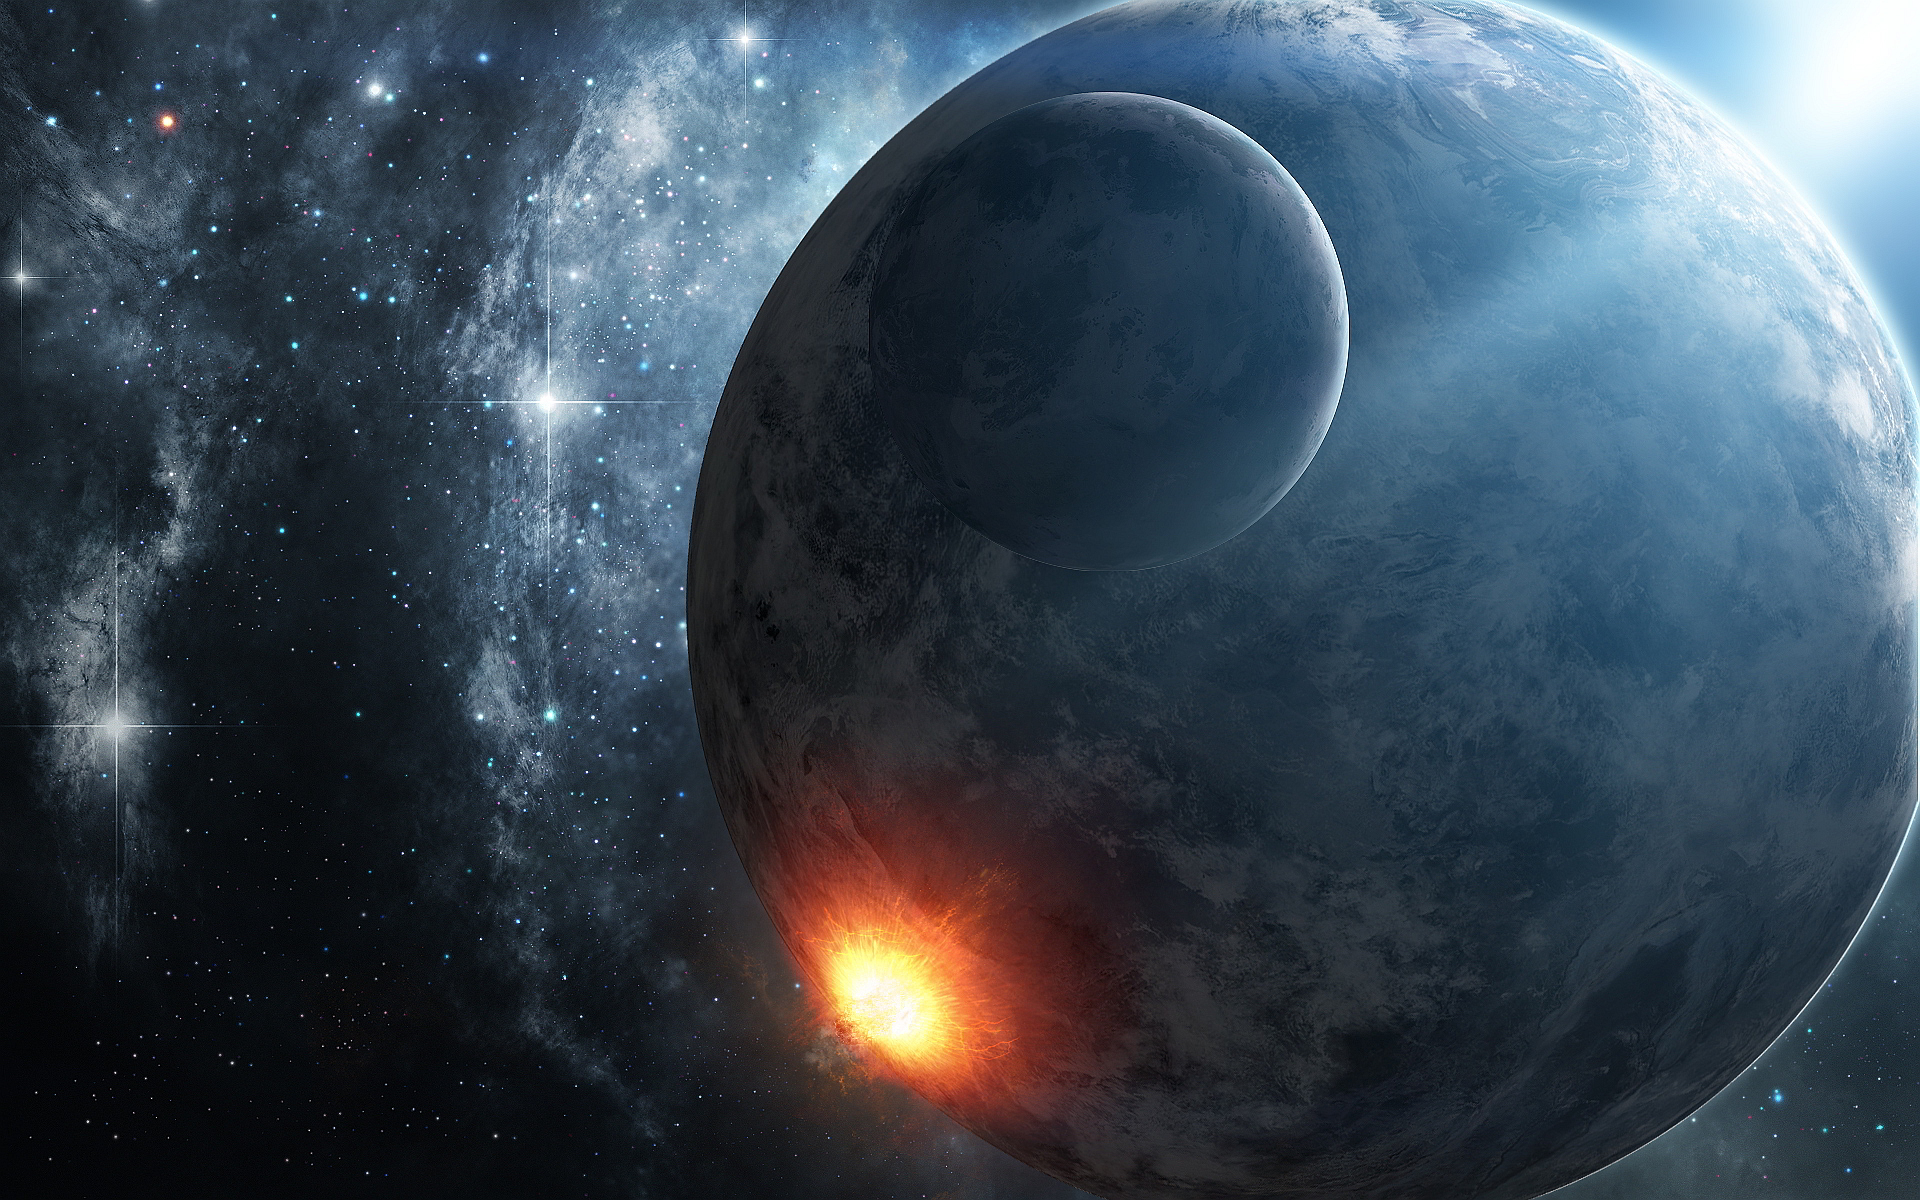 Space planet explosion